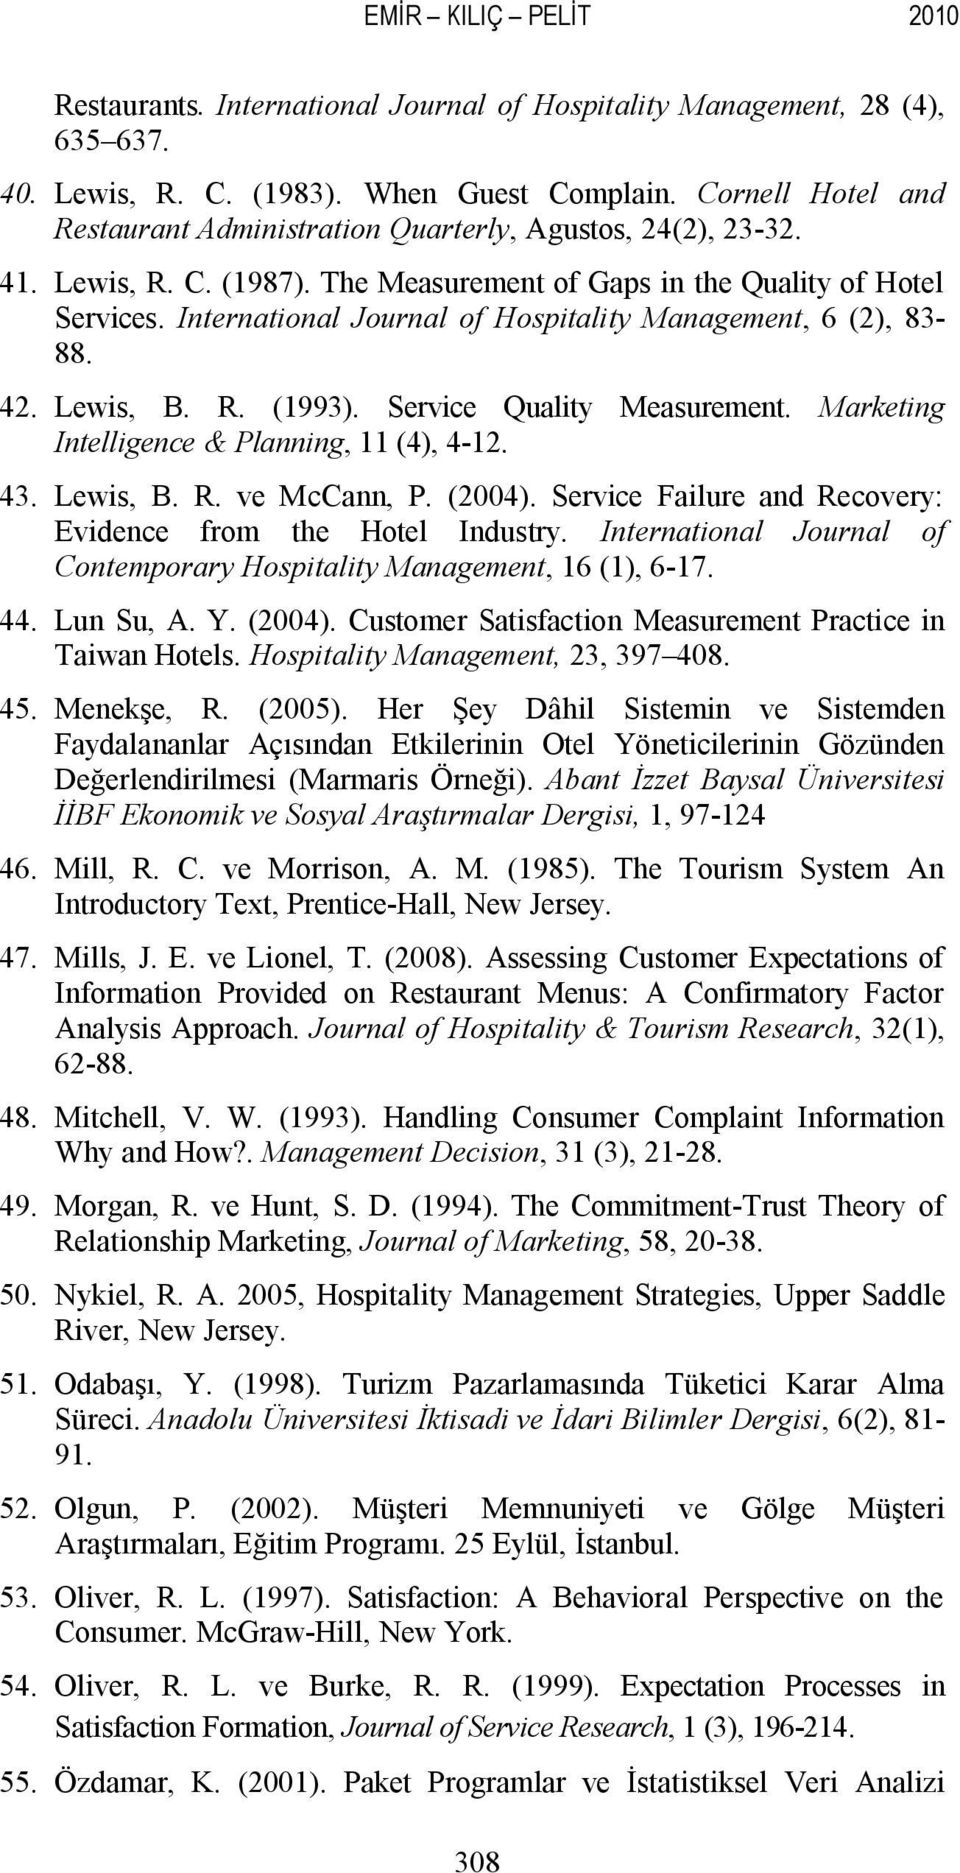 International Journal of Hospitality Management, 6 (2), 83-88. 42. Lewis, B. R. (1993). Service Quality Measurement. Marketing Intelligence & Planning, 11 (4), 4-12. 43. Lewis, B. R. ve McCann, P.